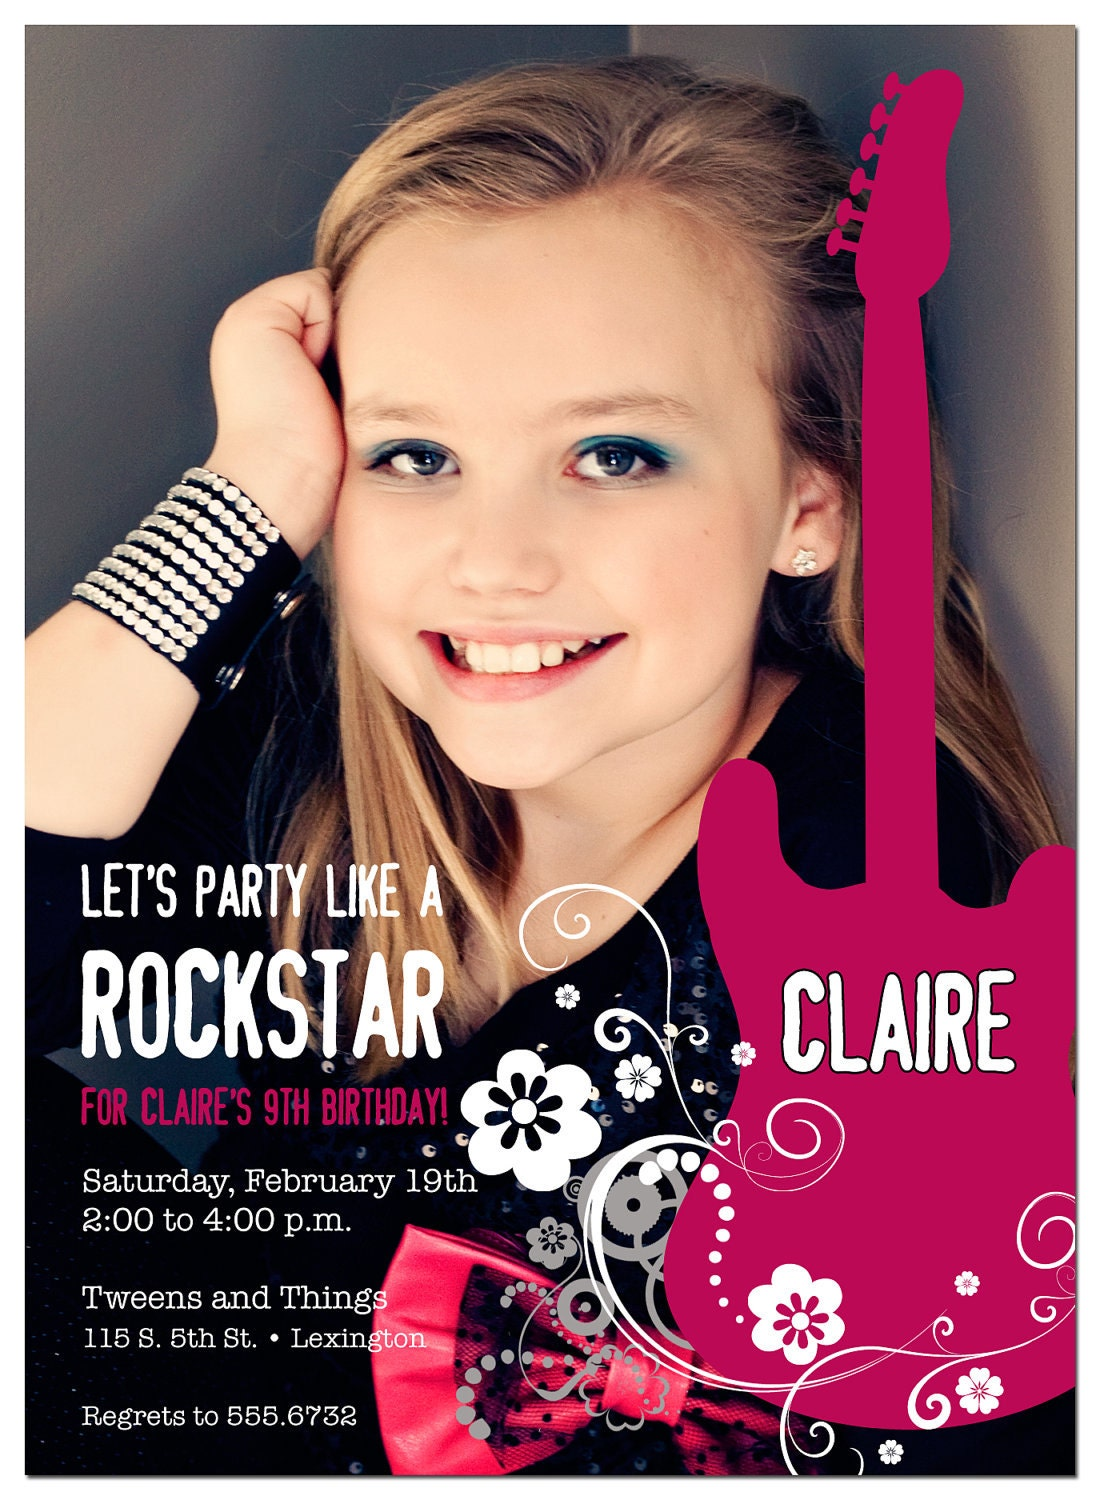 Party like a ROCKSTAR Birthday Party Photo Invitation